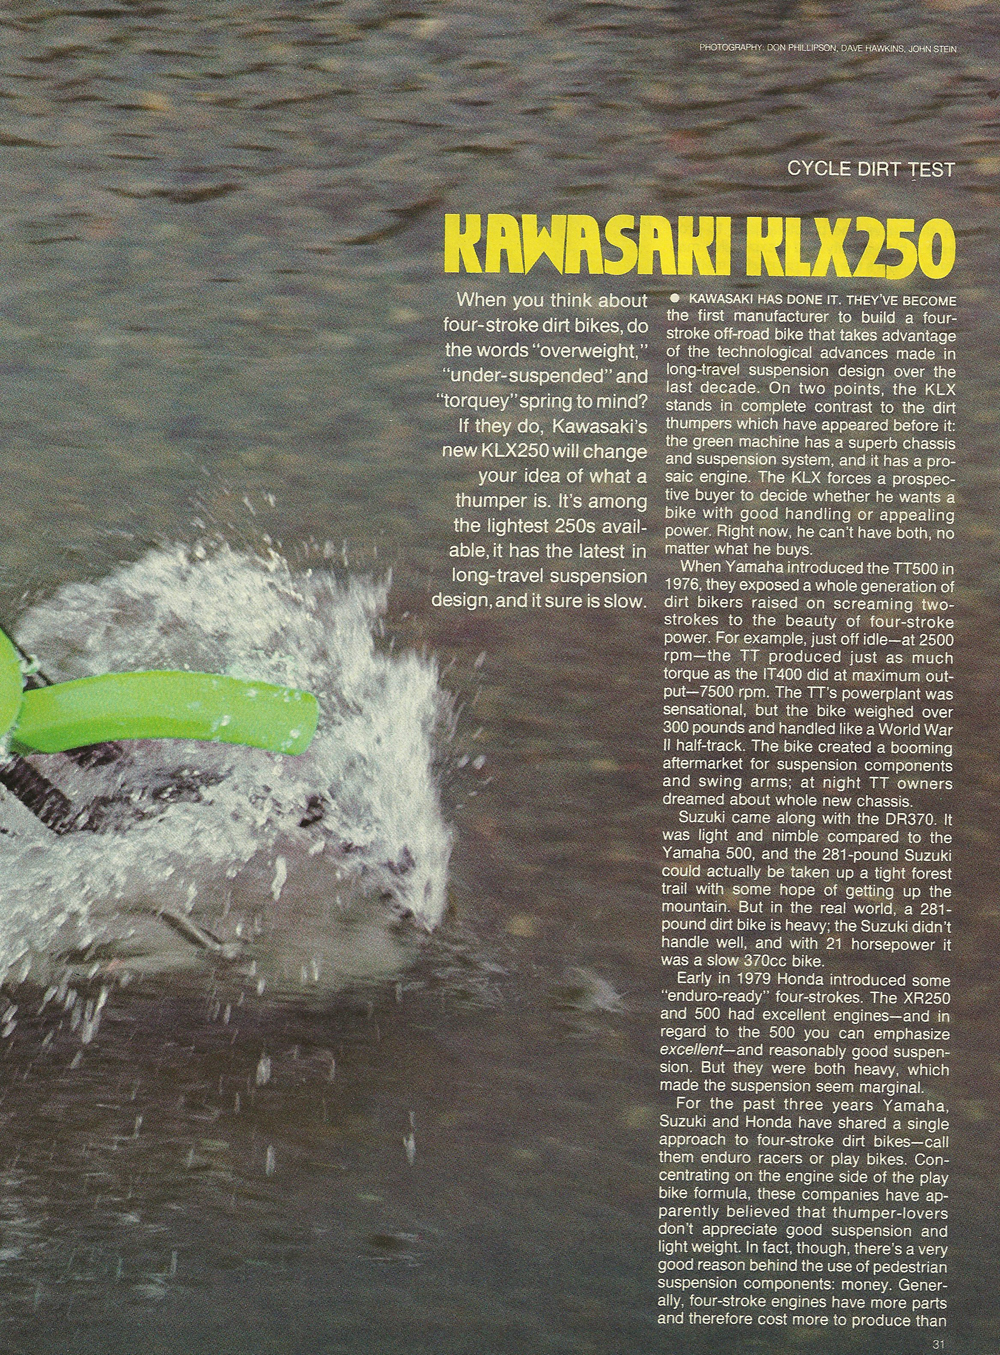 1979 Kawasaki KLX250 off road test 1.jpg